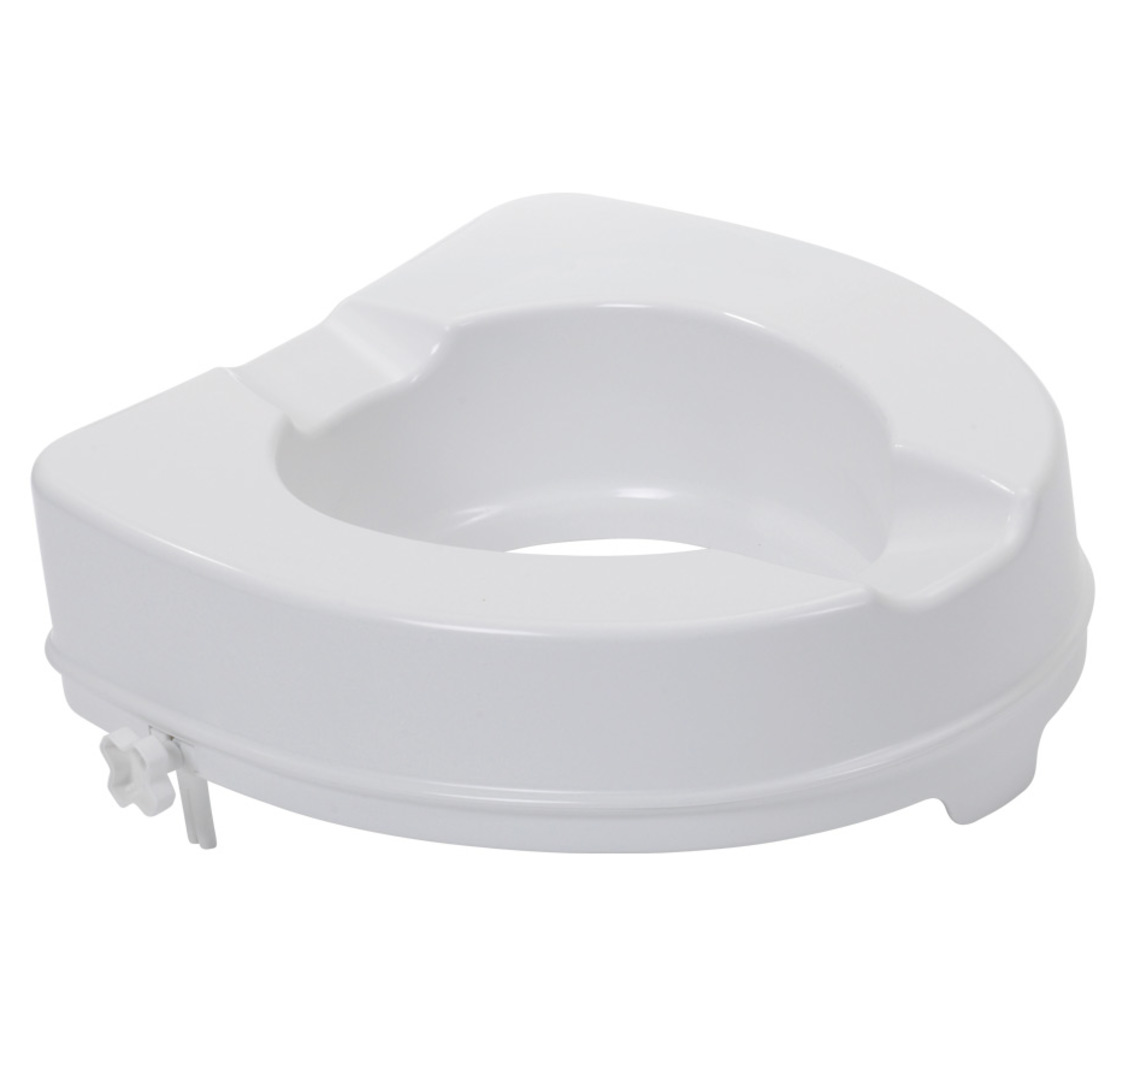 Raised Toilet Seat Without Lid World Of Scooters Manchester